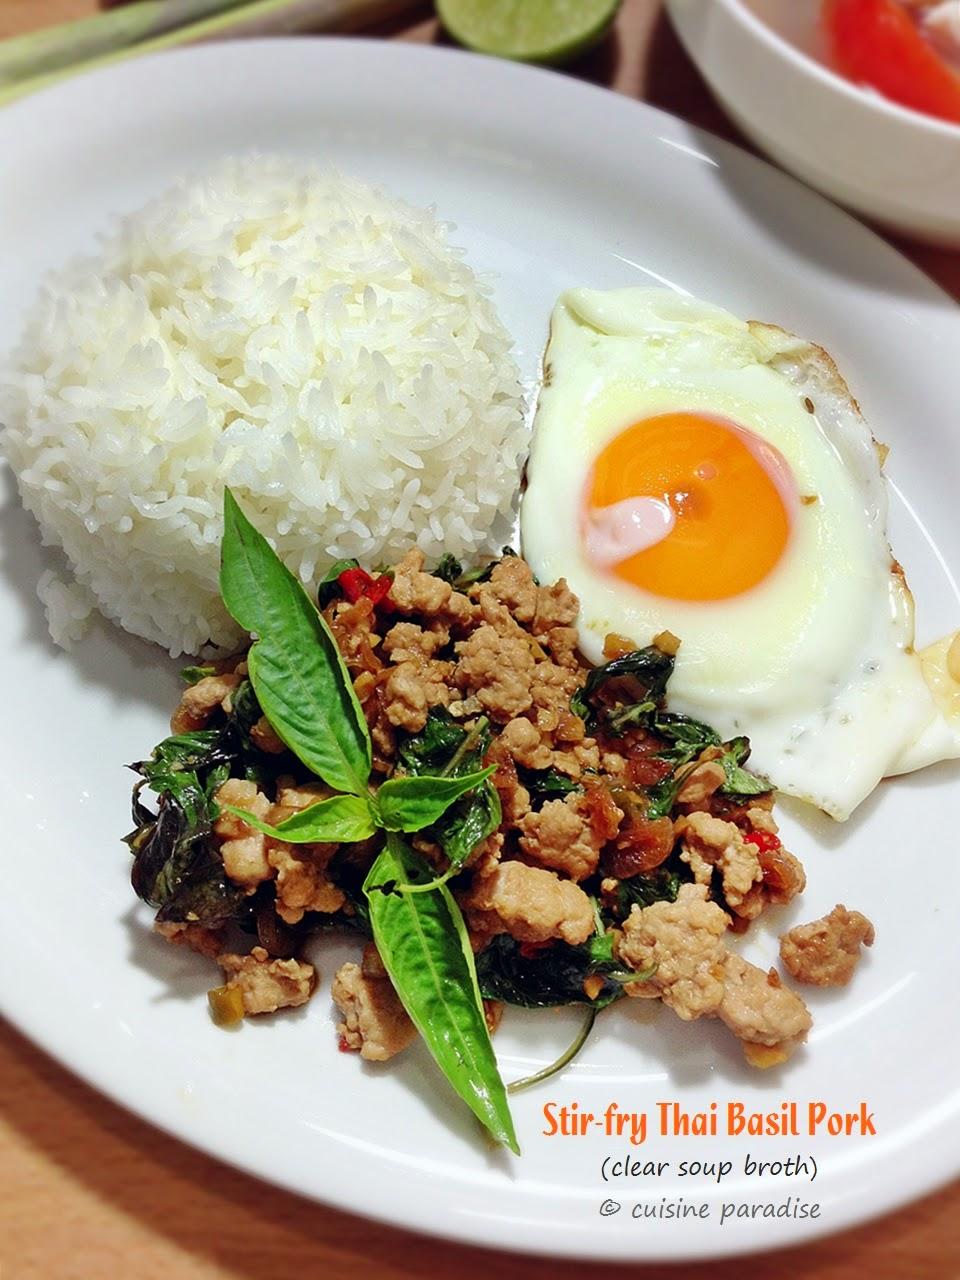 Cuisine paradise singapore food blog recipes reviews and travel cuisine paradise singapore food blog recipes reviews and travel 3 recipes thai style steamed pomfret seafood tom yum and thai basil minced pork forumfinder Gallery